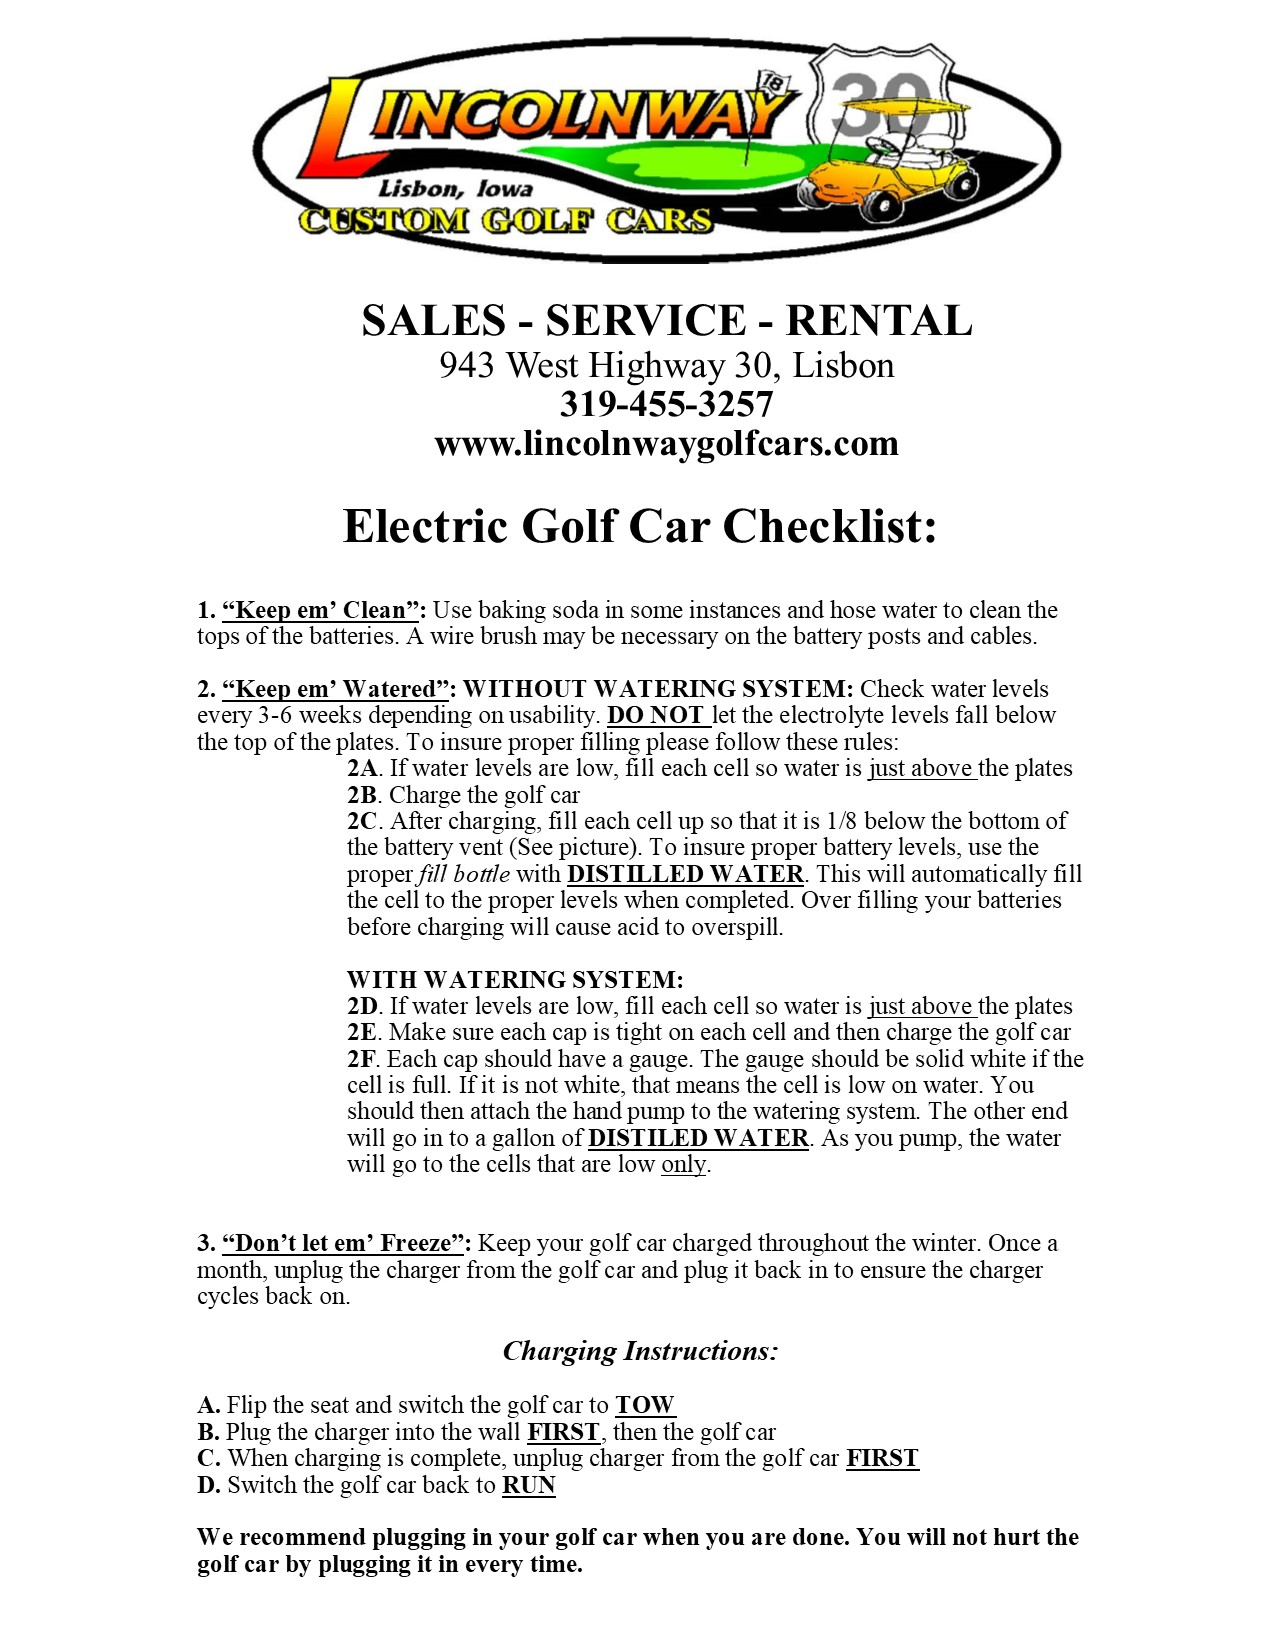 Golf Car Charging Instructions